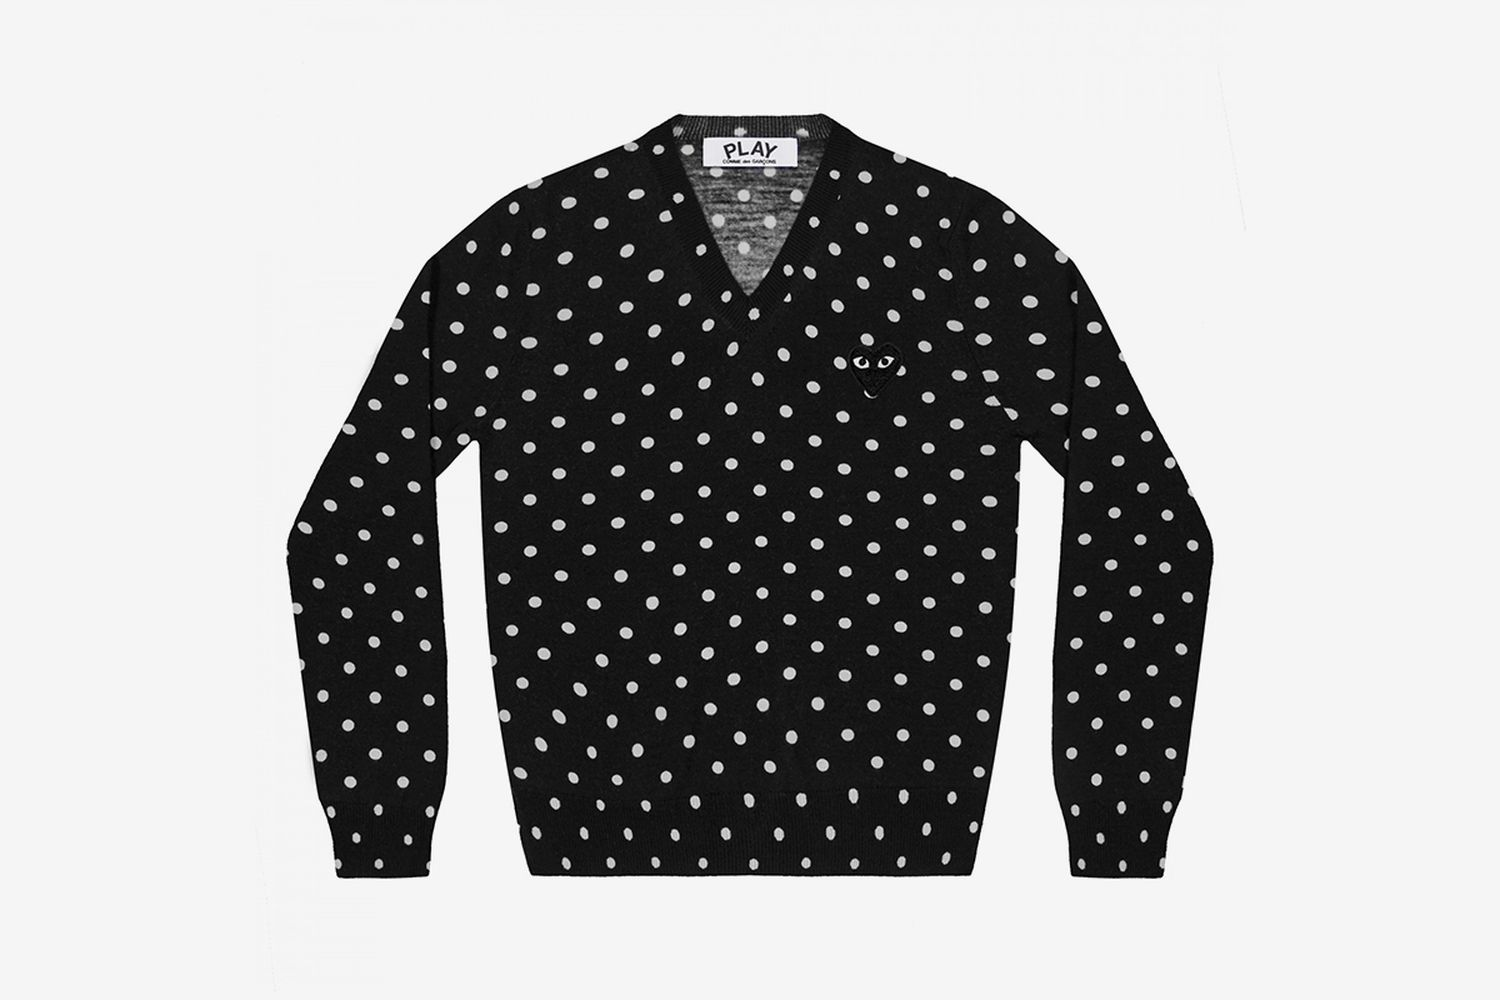 PLAY Polka Dot V Neck Sweater